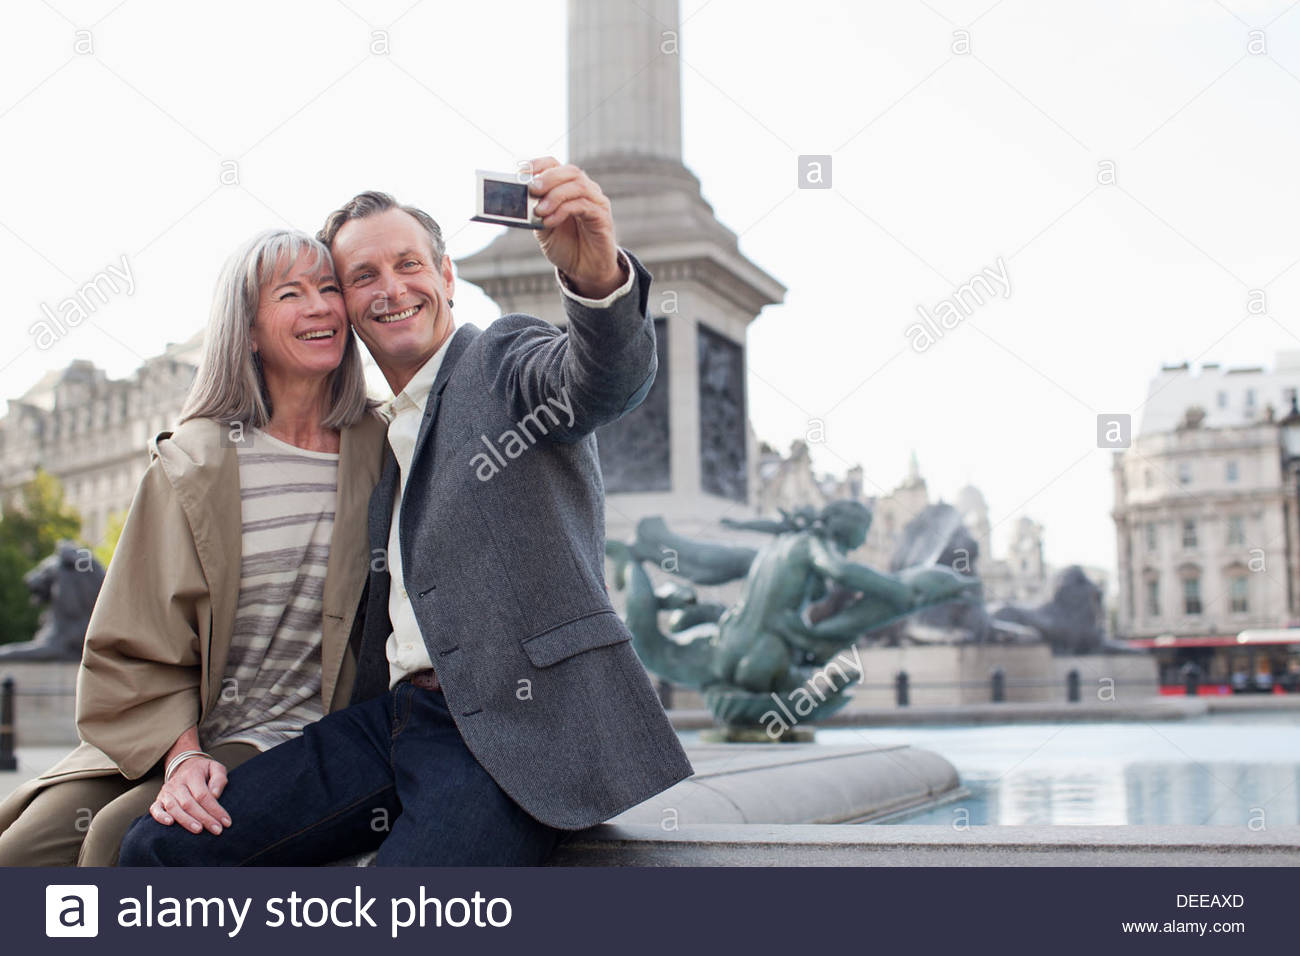 Couple taking self-portrait with digital camera under monument - Stock Image